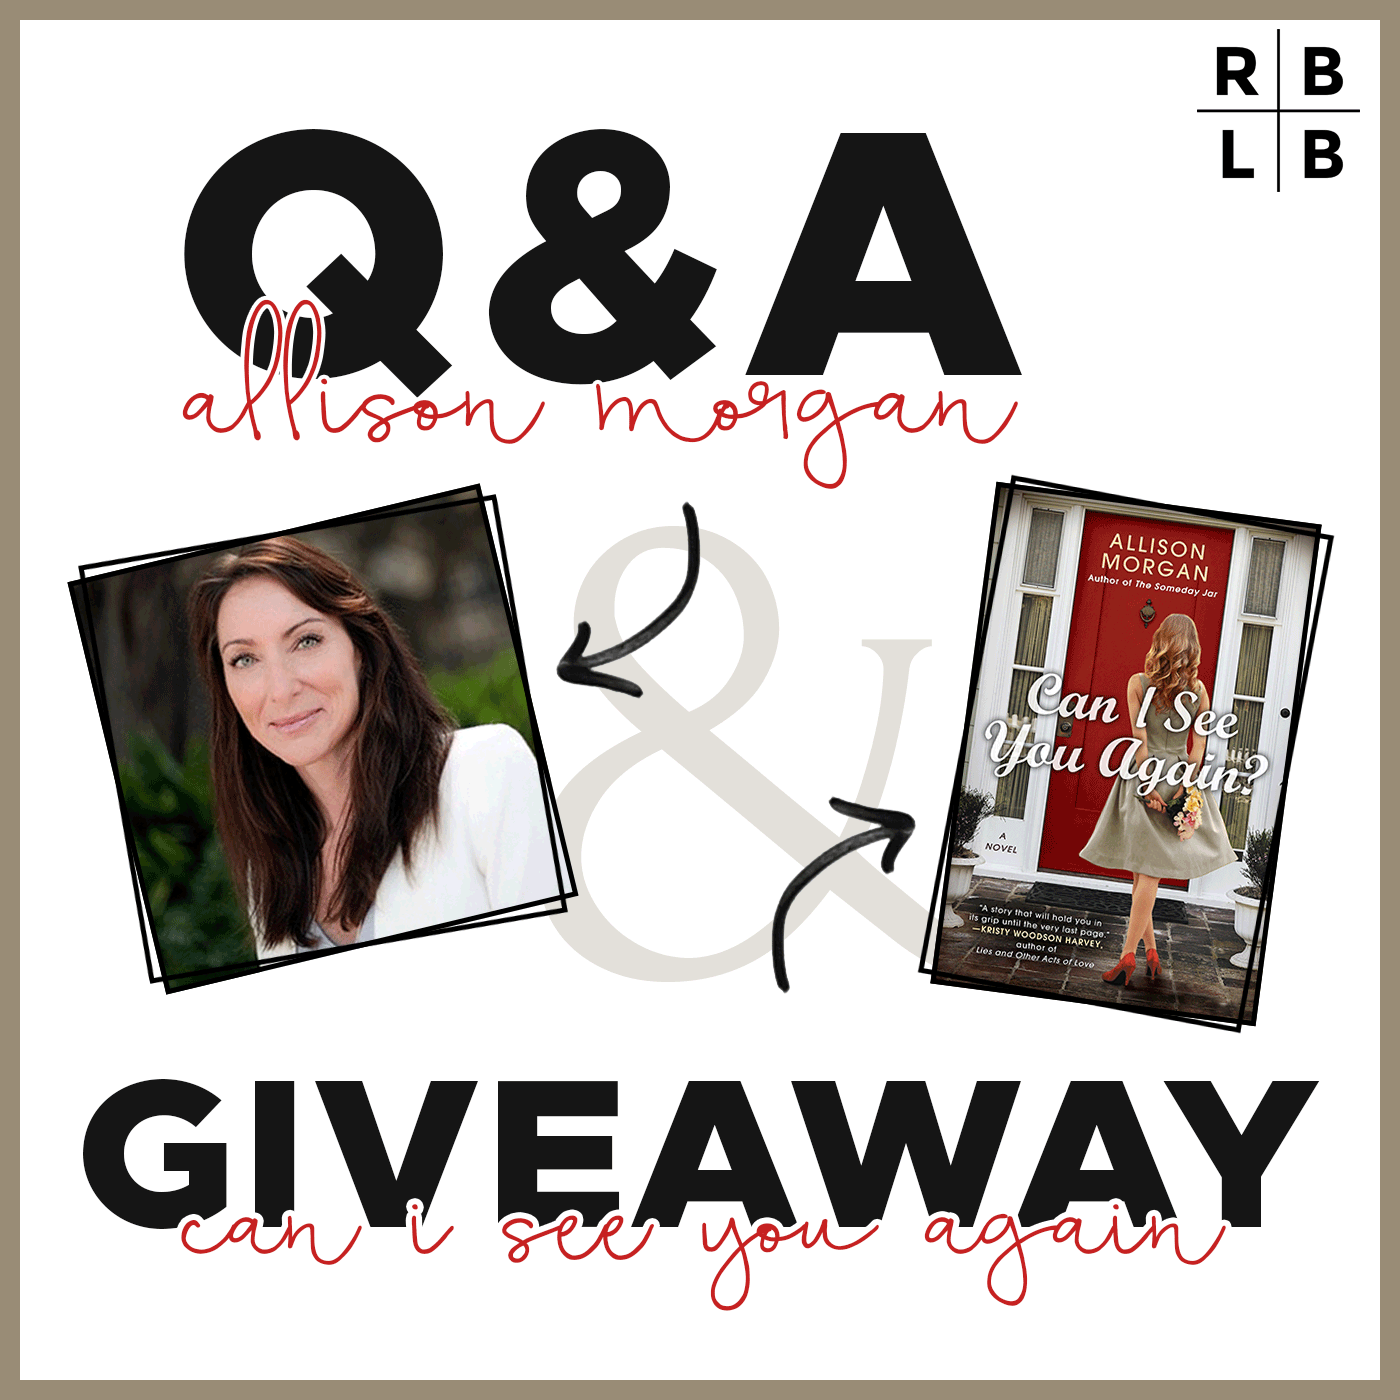 Interview w/ Allison Morgan & Giveaway of Can I See You Again